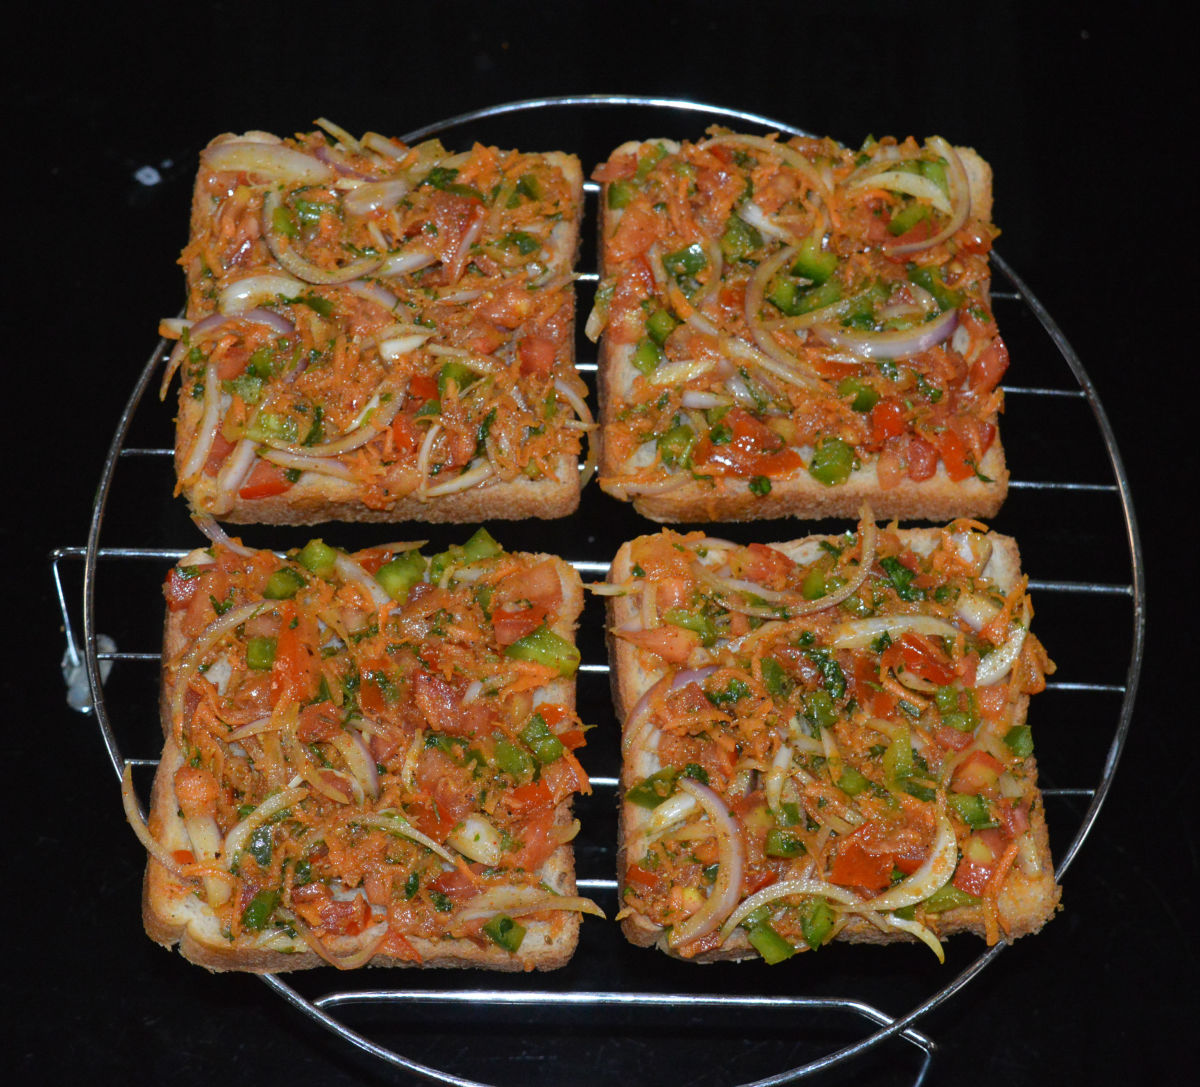 Place the stuffed bread slices on a grill stand. Place the stand in the oven and grill for 9 or 10 minutes.